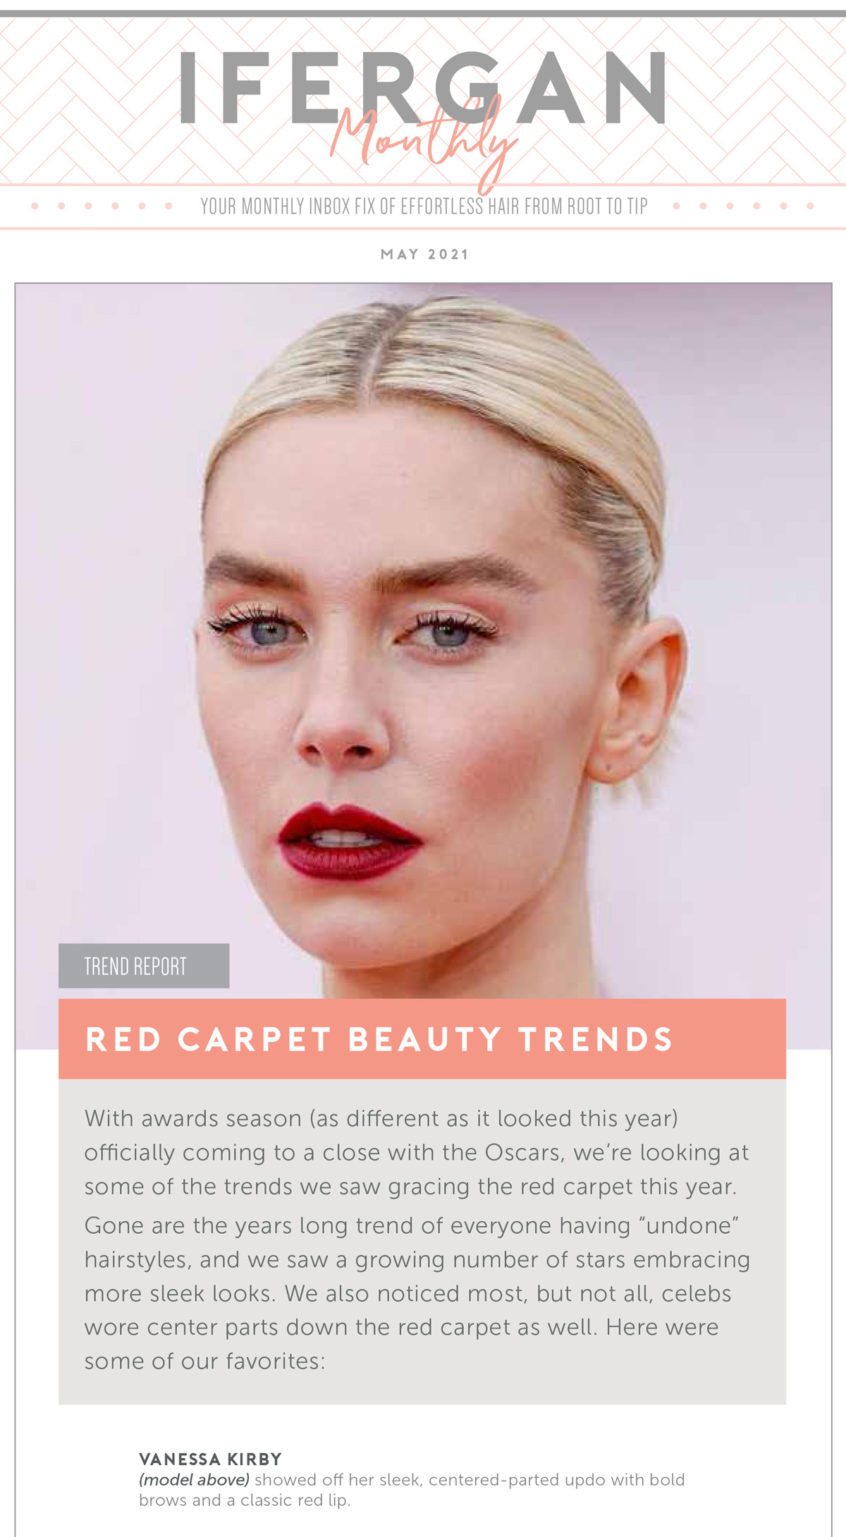 "May Newsletter: Red Carpet Beauty Trends. With awards season (as different as it looked this year) officially coming to a close with the Oscars, we're looking at some of the trends we saw gracing the red carpet this year. Gone are the years long trend of everyone having ""undone"" hairstyles, and we saw a growing number of stars embracing more sleek looks. We also noticed most, but not all, celebs wore center parts down the red carpet as well. Here were some of our favorites: Vanessa Kirby showed off her sleek, centered-parted updo with bold brows and a classic red lip."